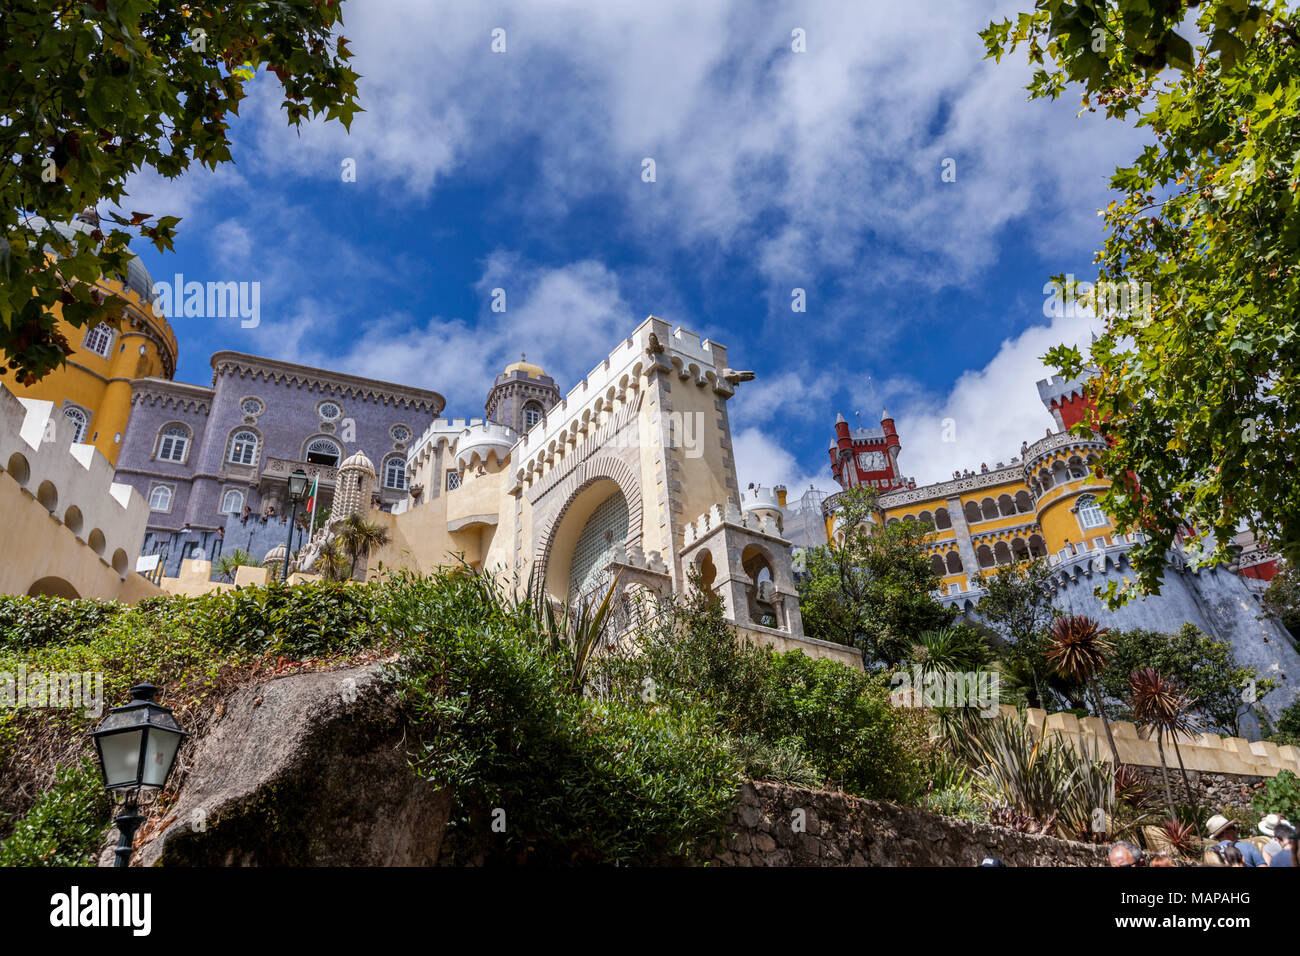 Sintra Place, Portugal - Stock Image